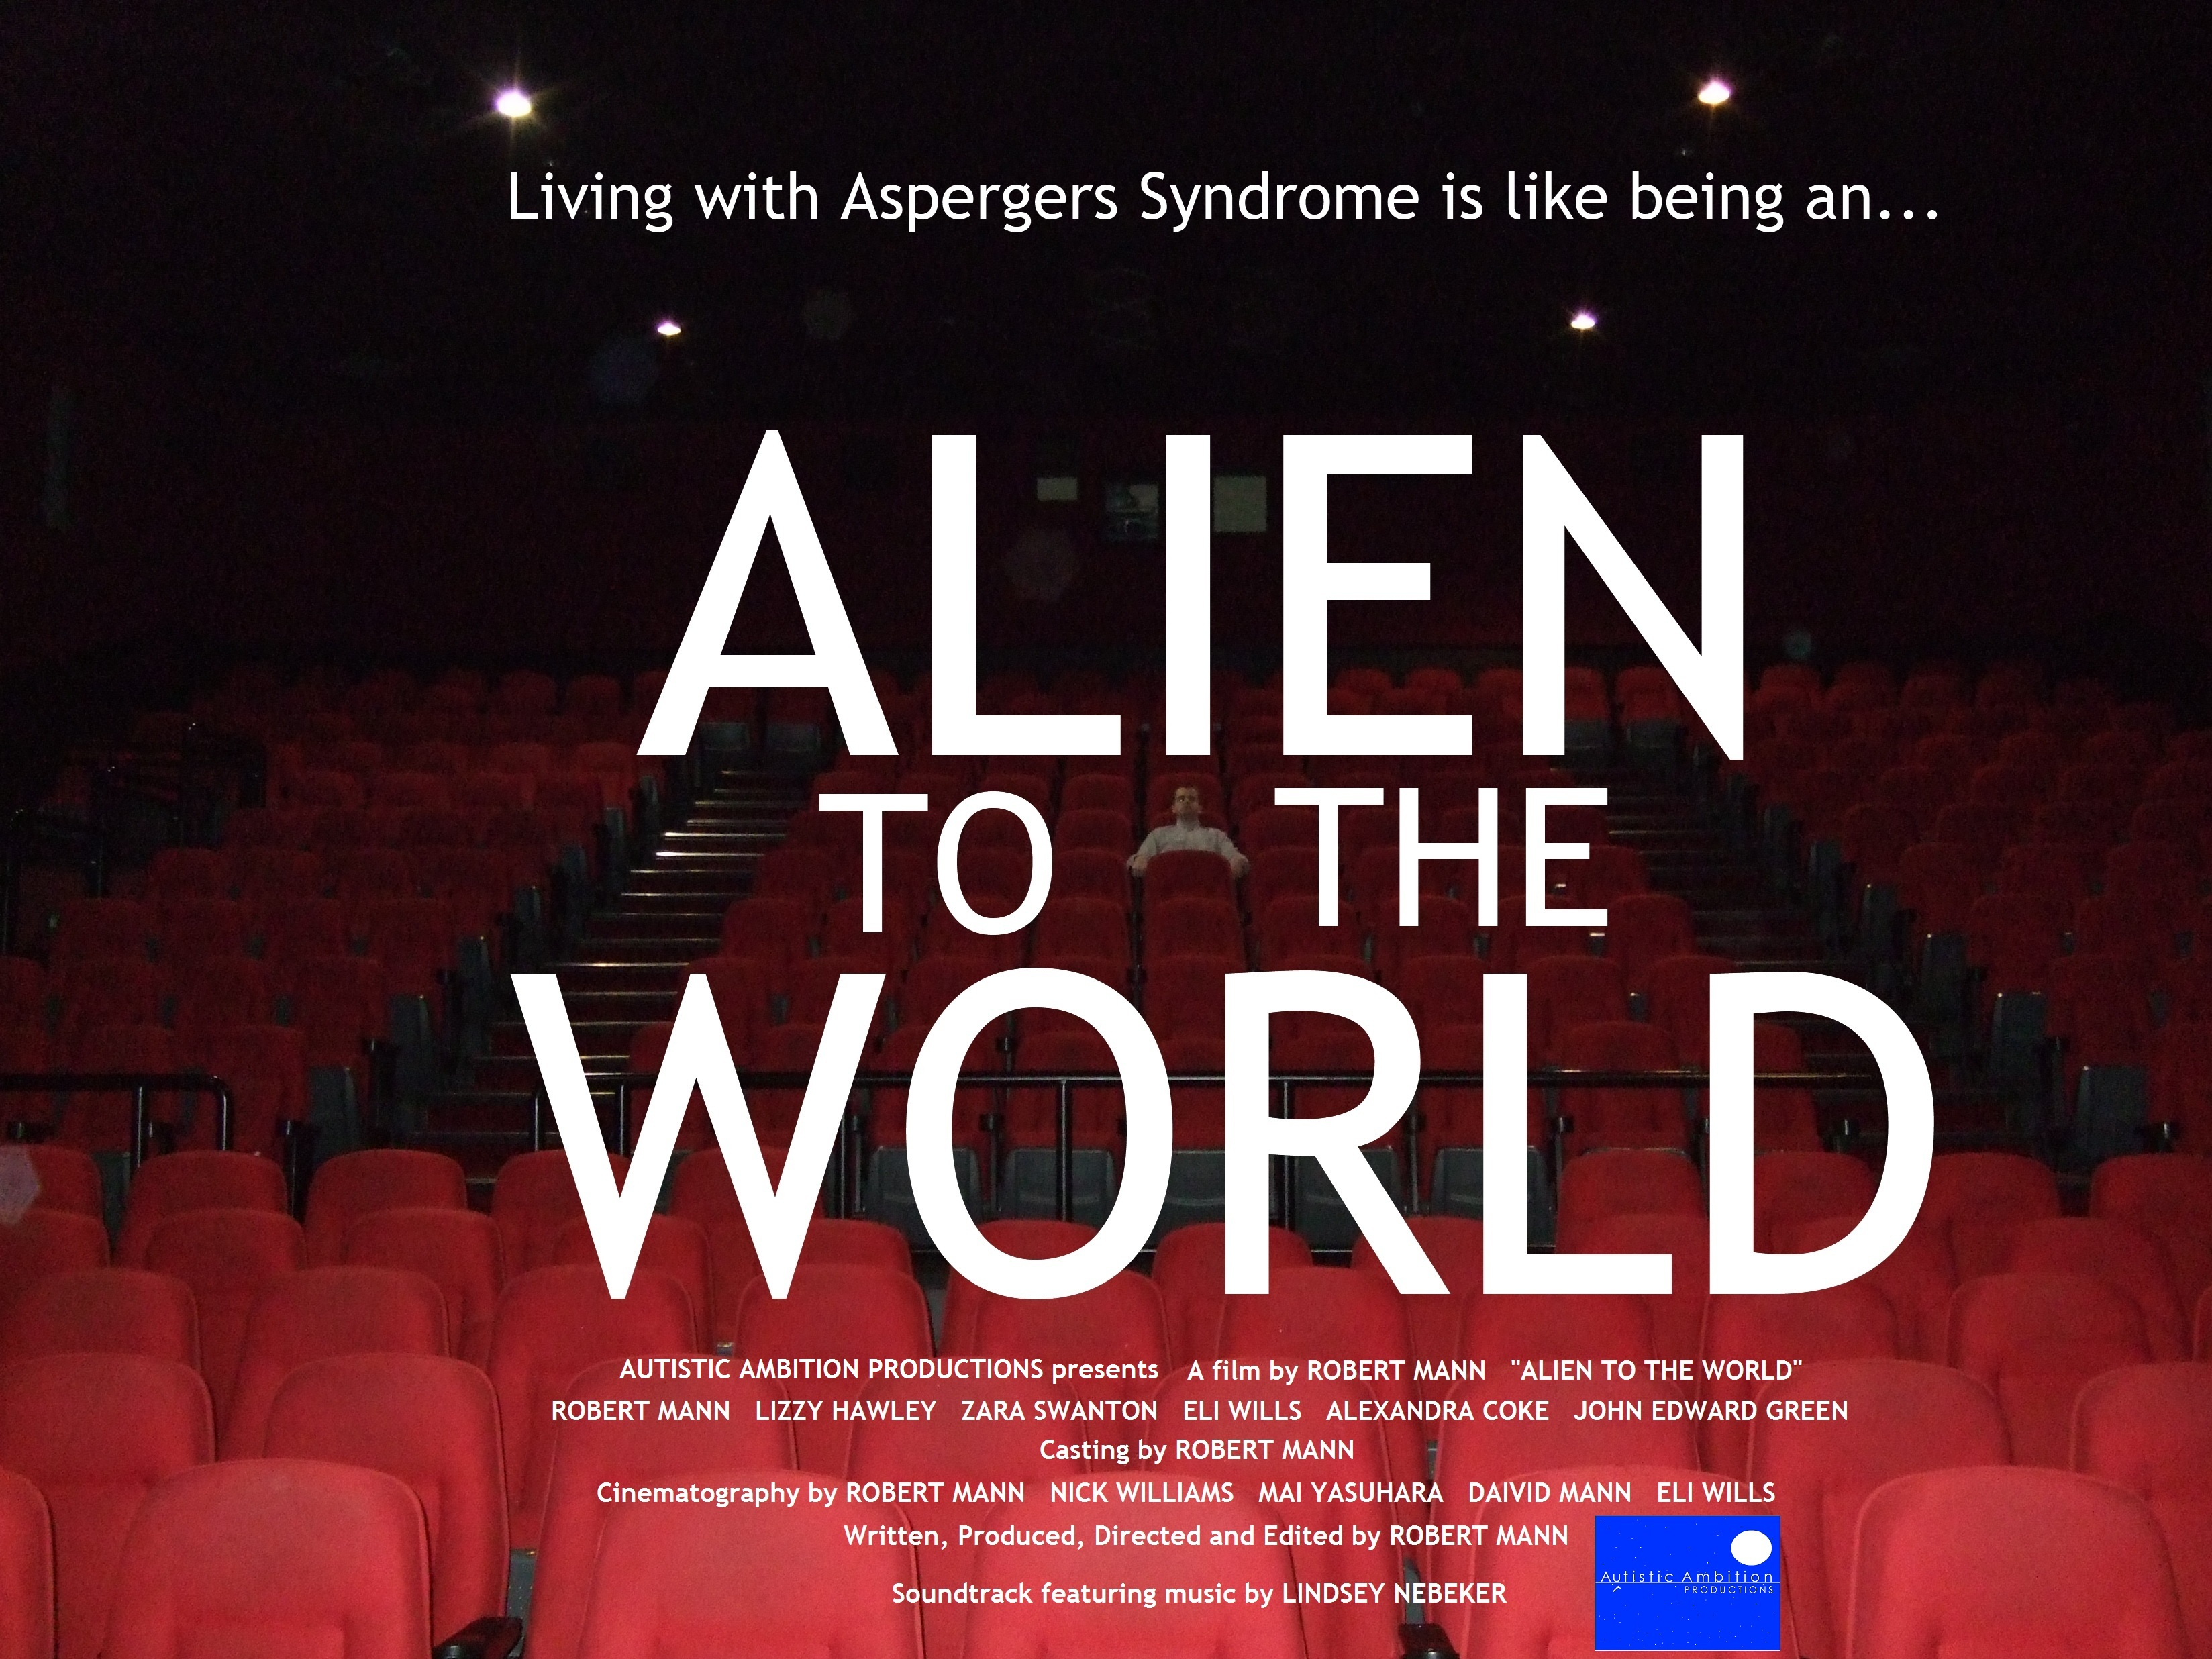 'Alien to the World': A Filmmaker's Personal Perspective on Asperger's Syndrome